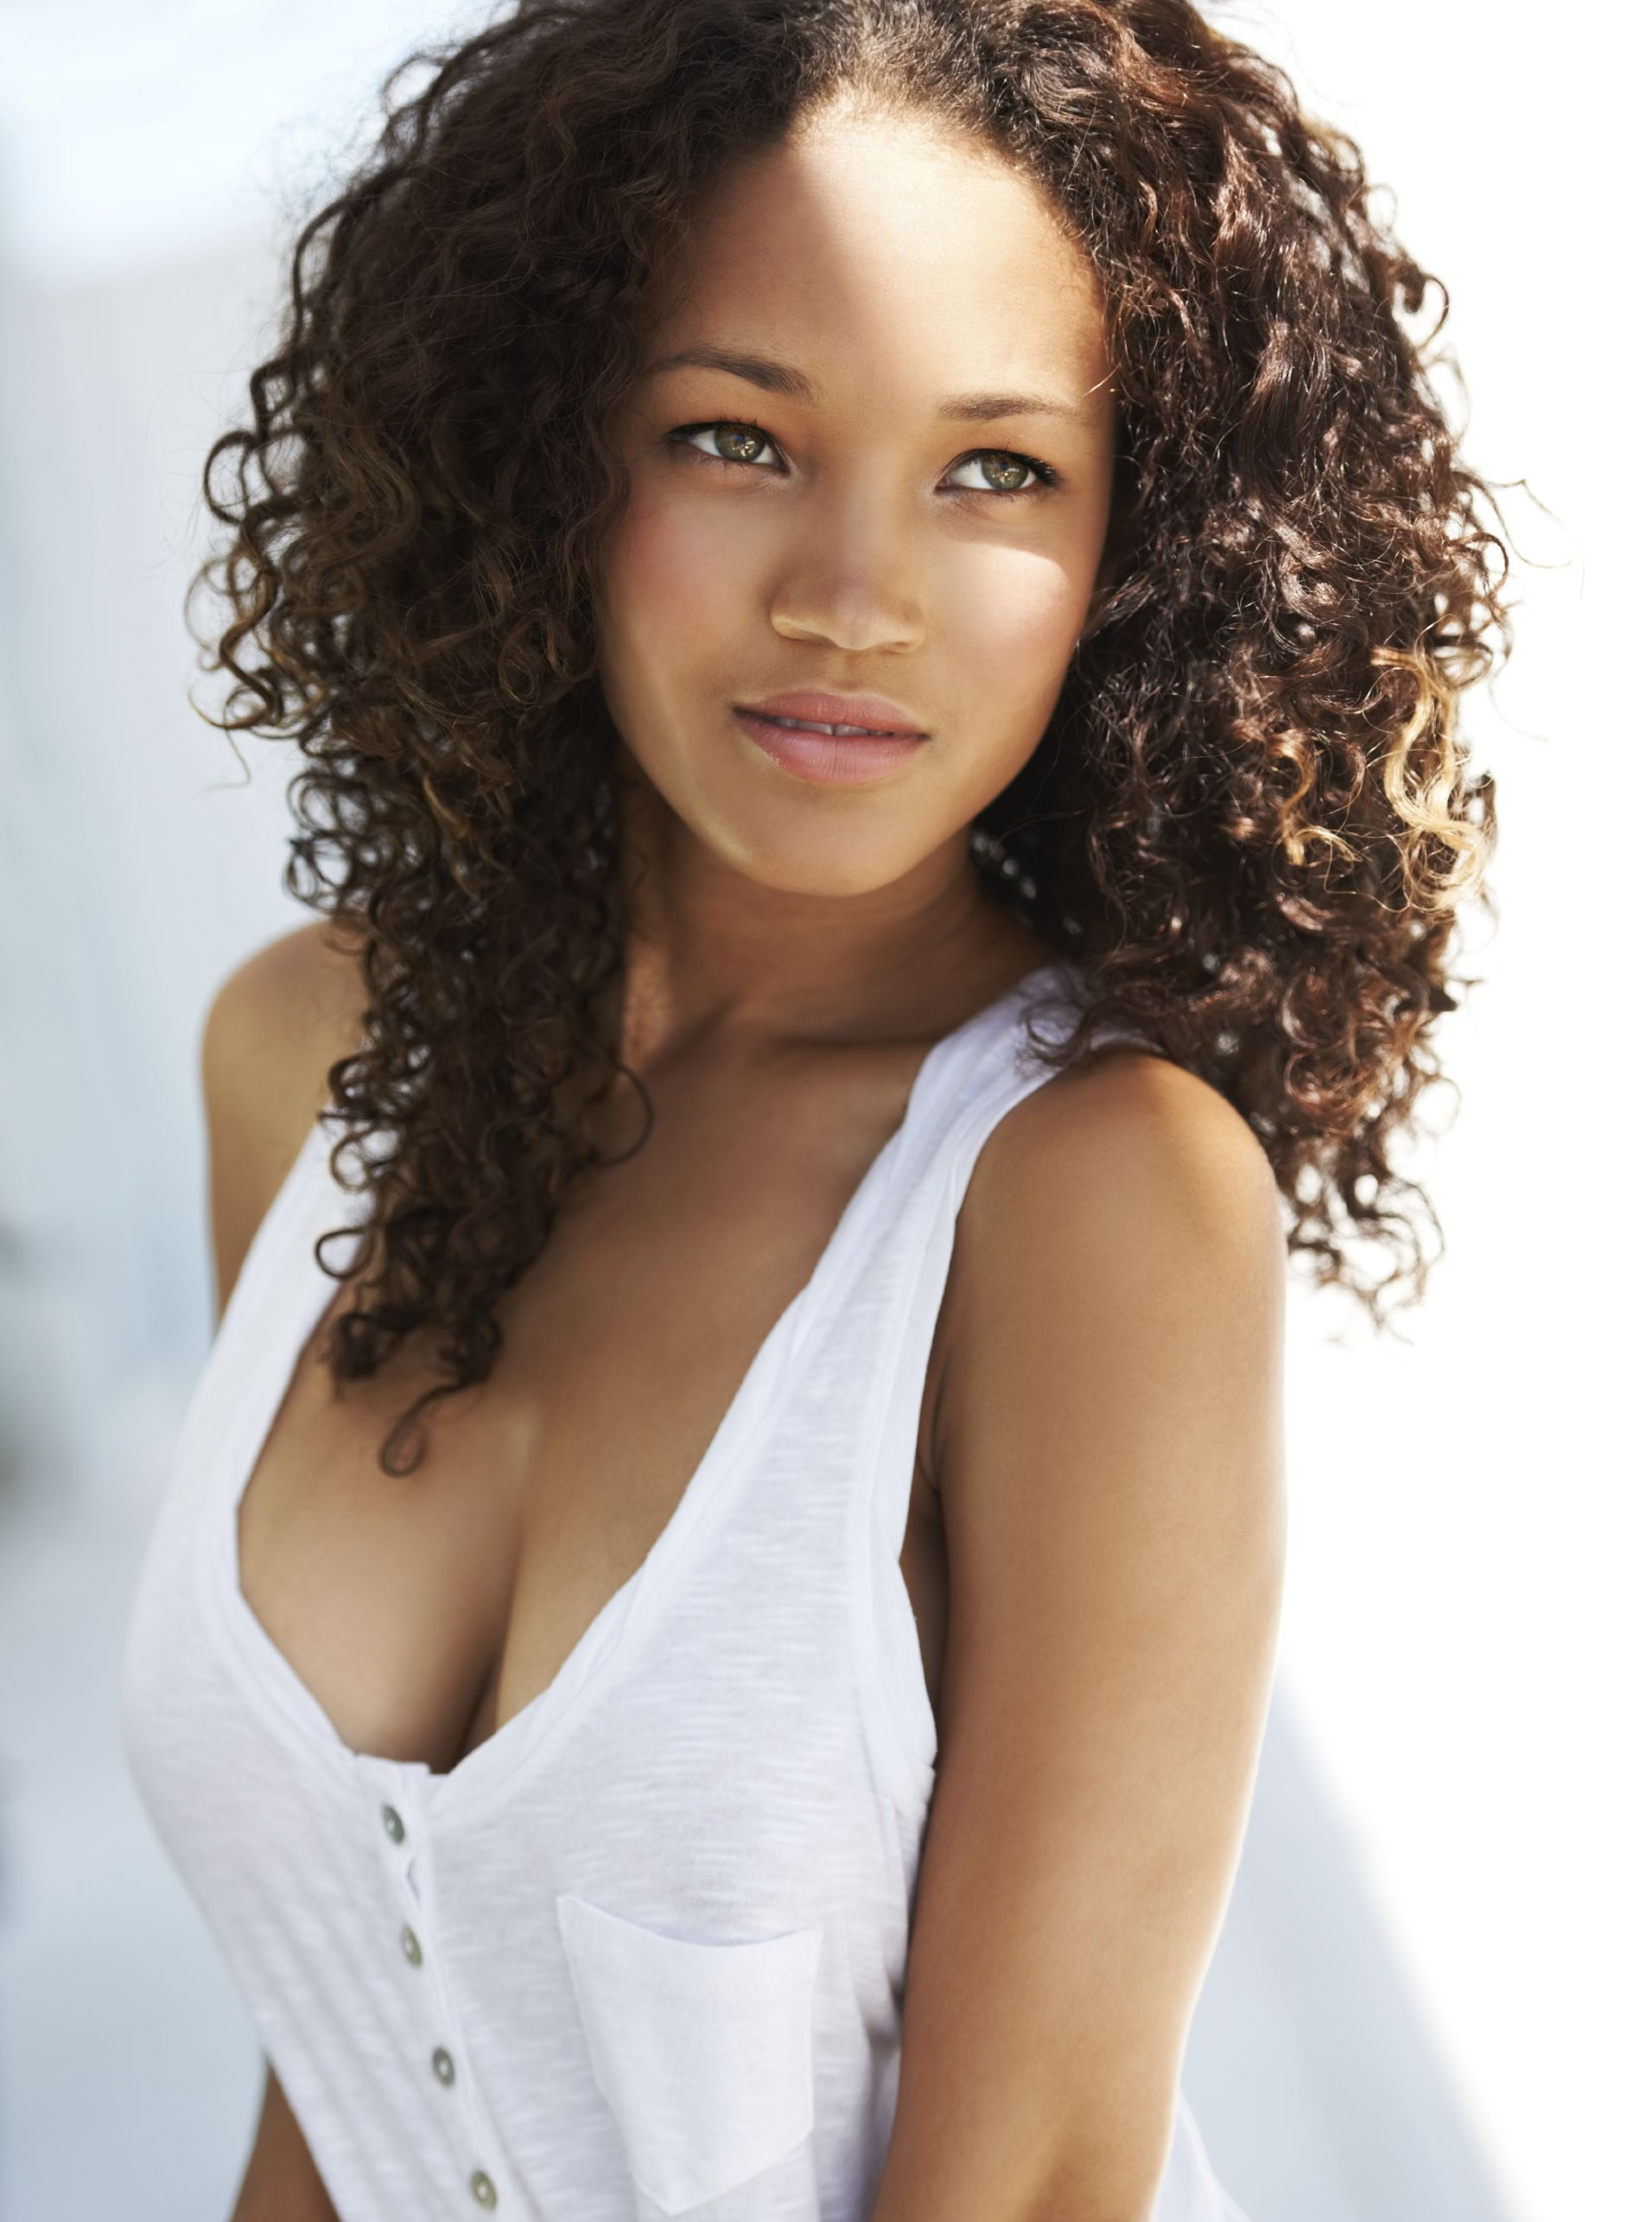 mixed women with curly hair nude